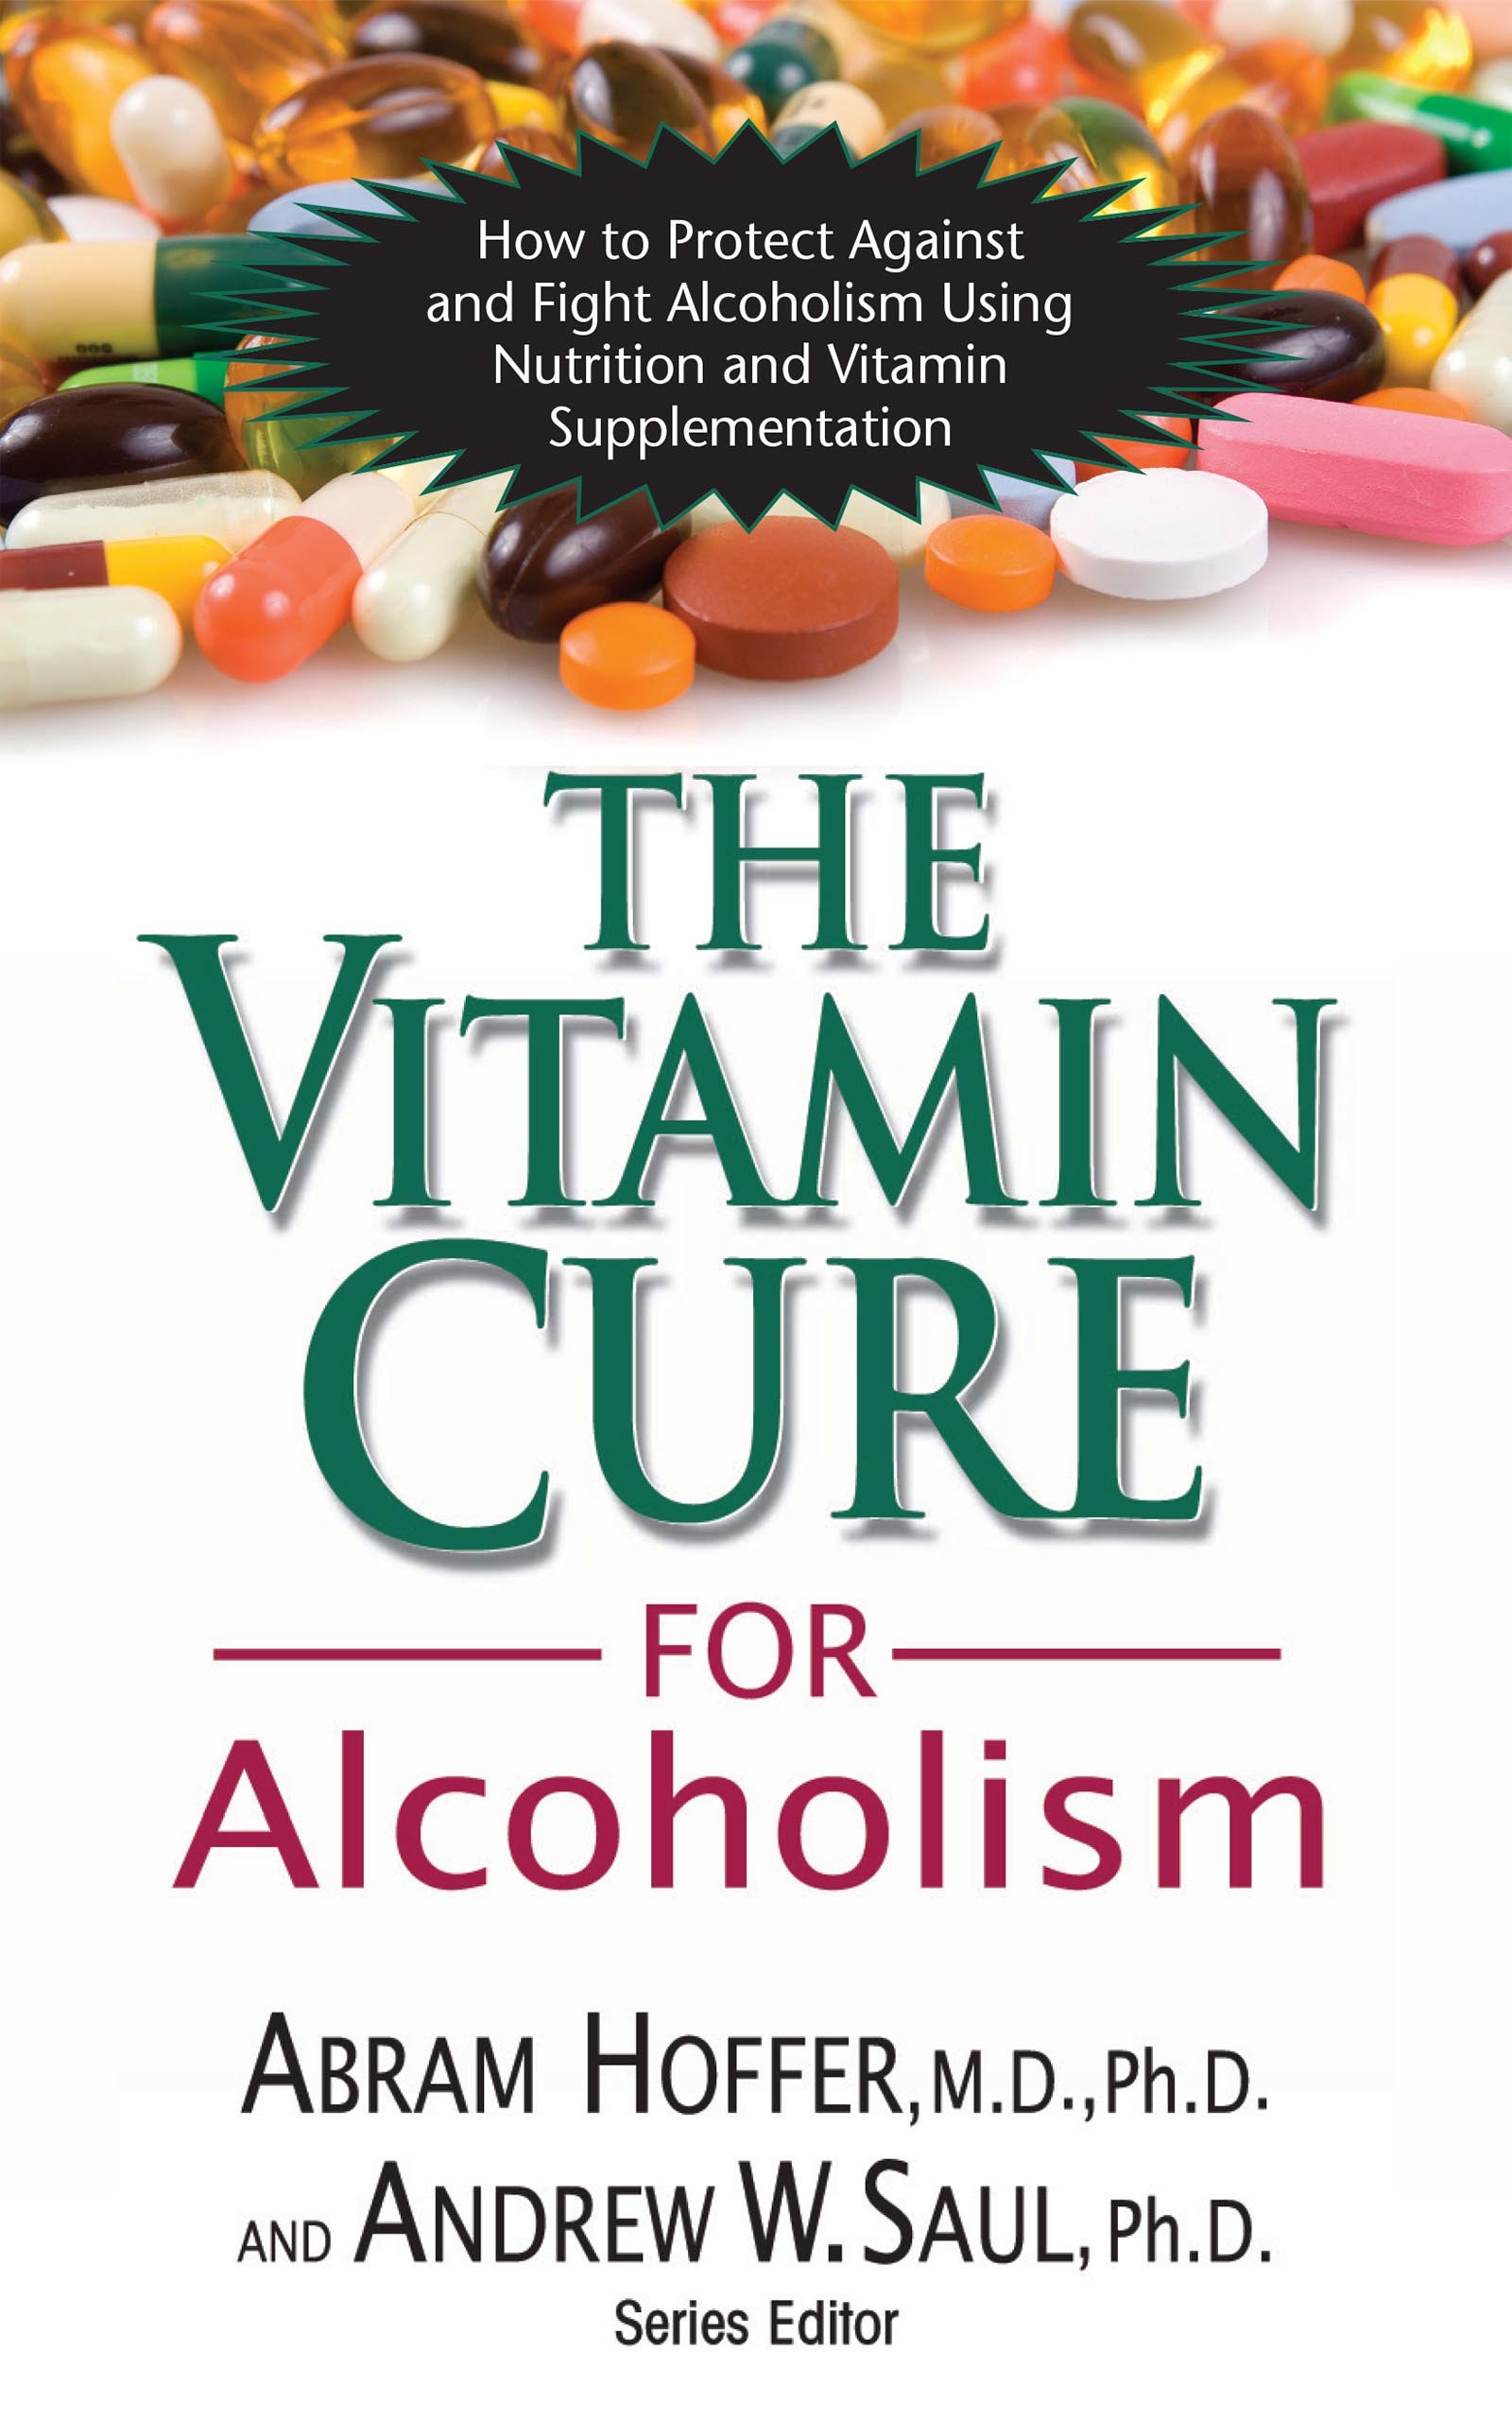 Vitamin Cure Alcoholism Orthomolecular Addictions product image